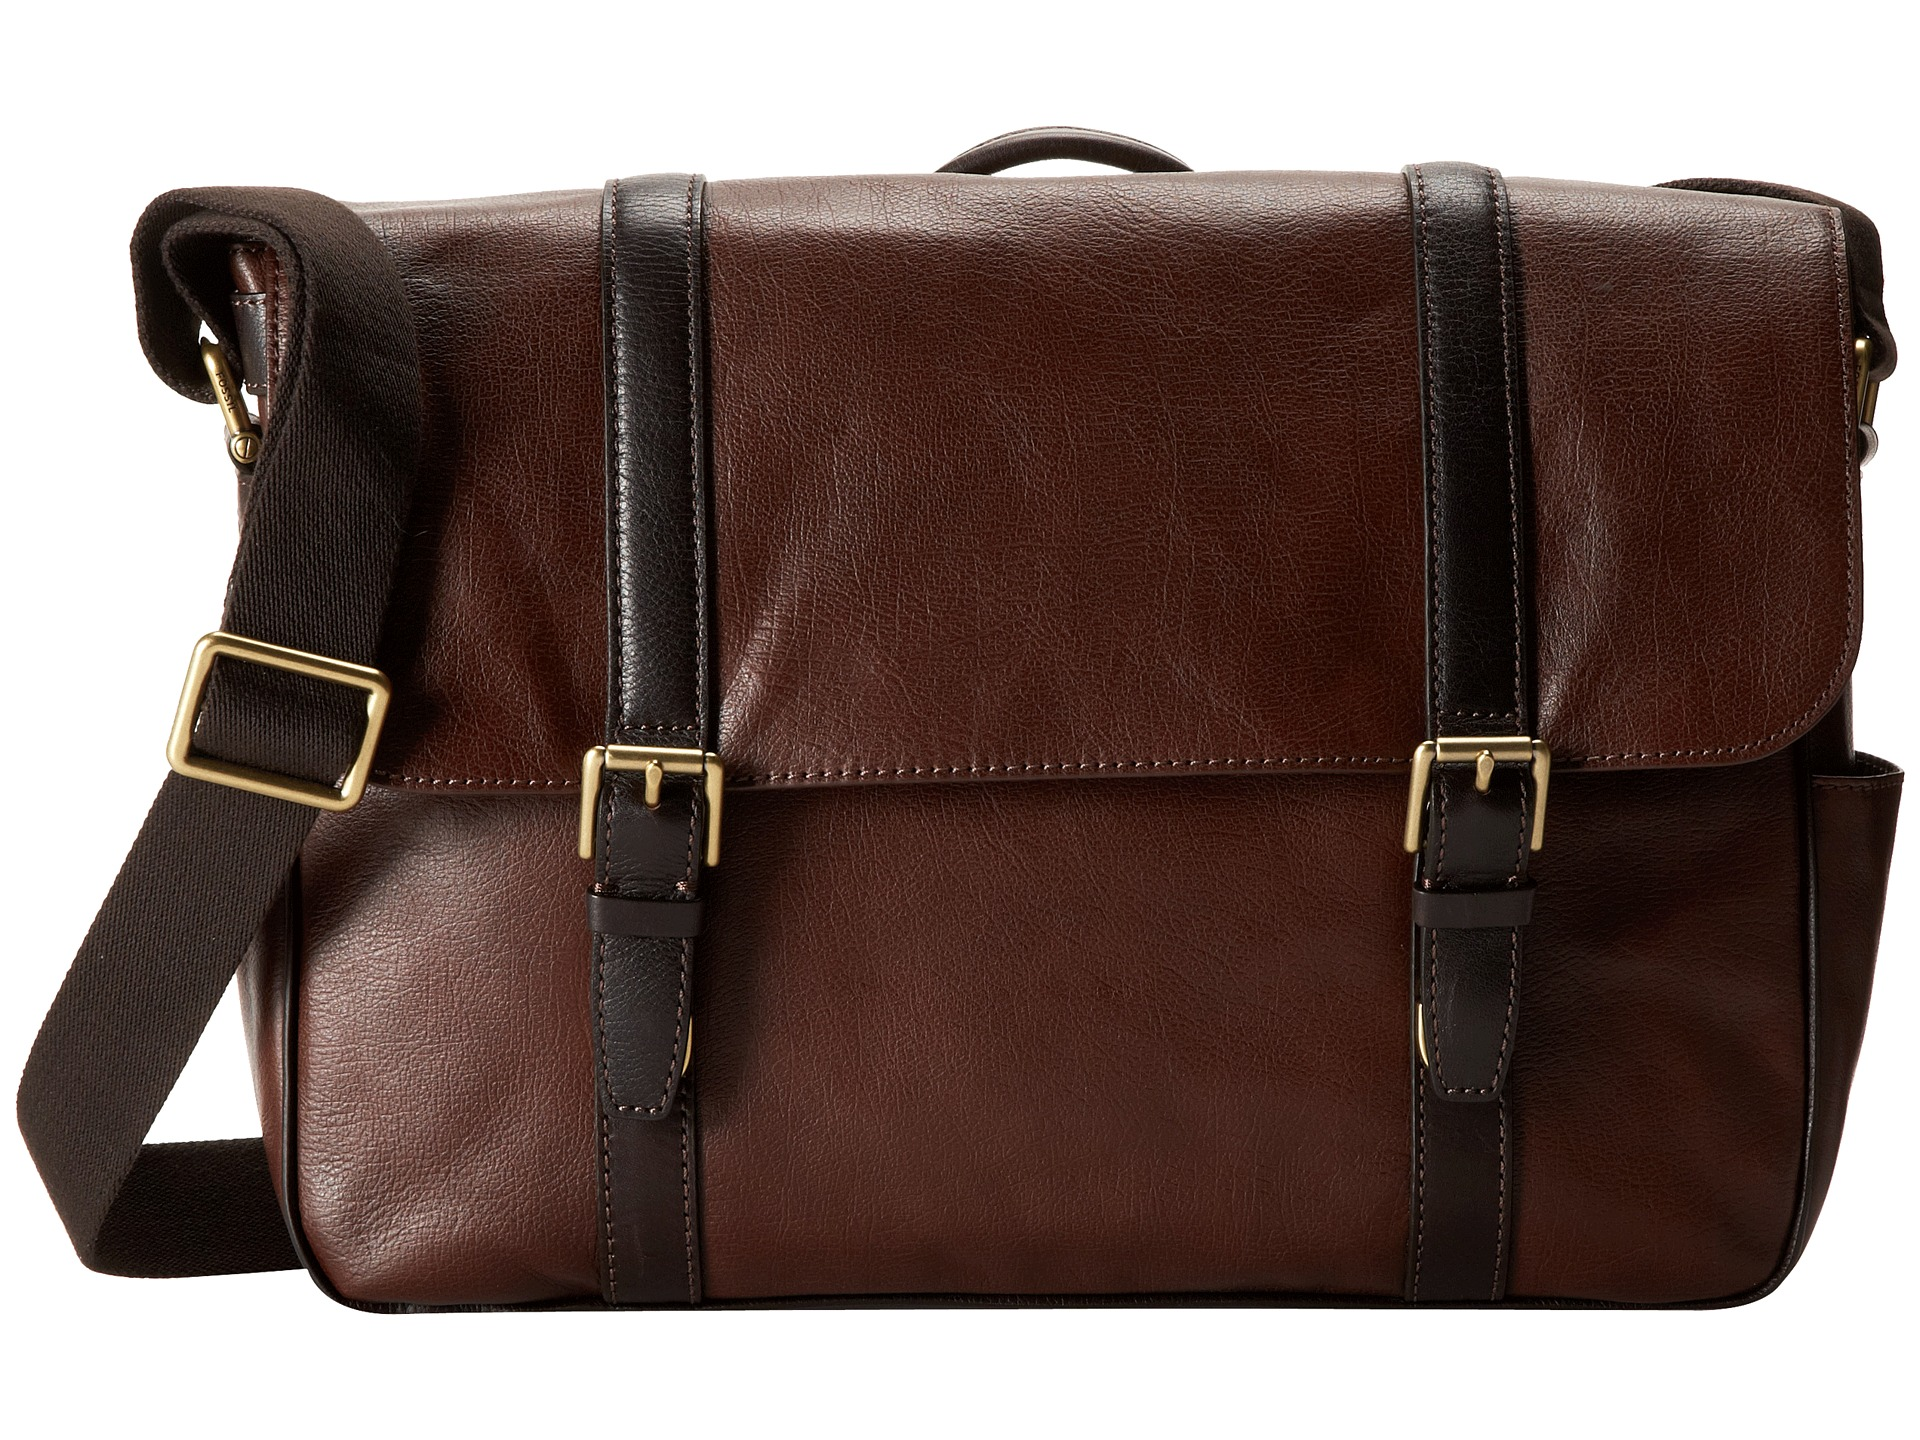 New Shoulder Bags Fossil Messenger Bags For Women Sale